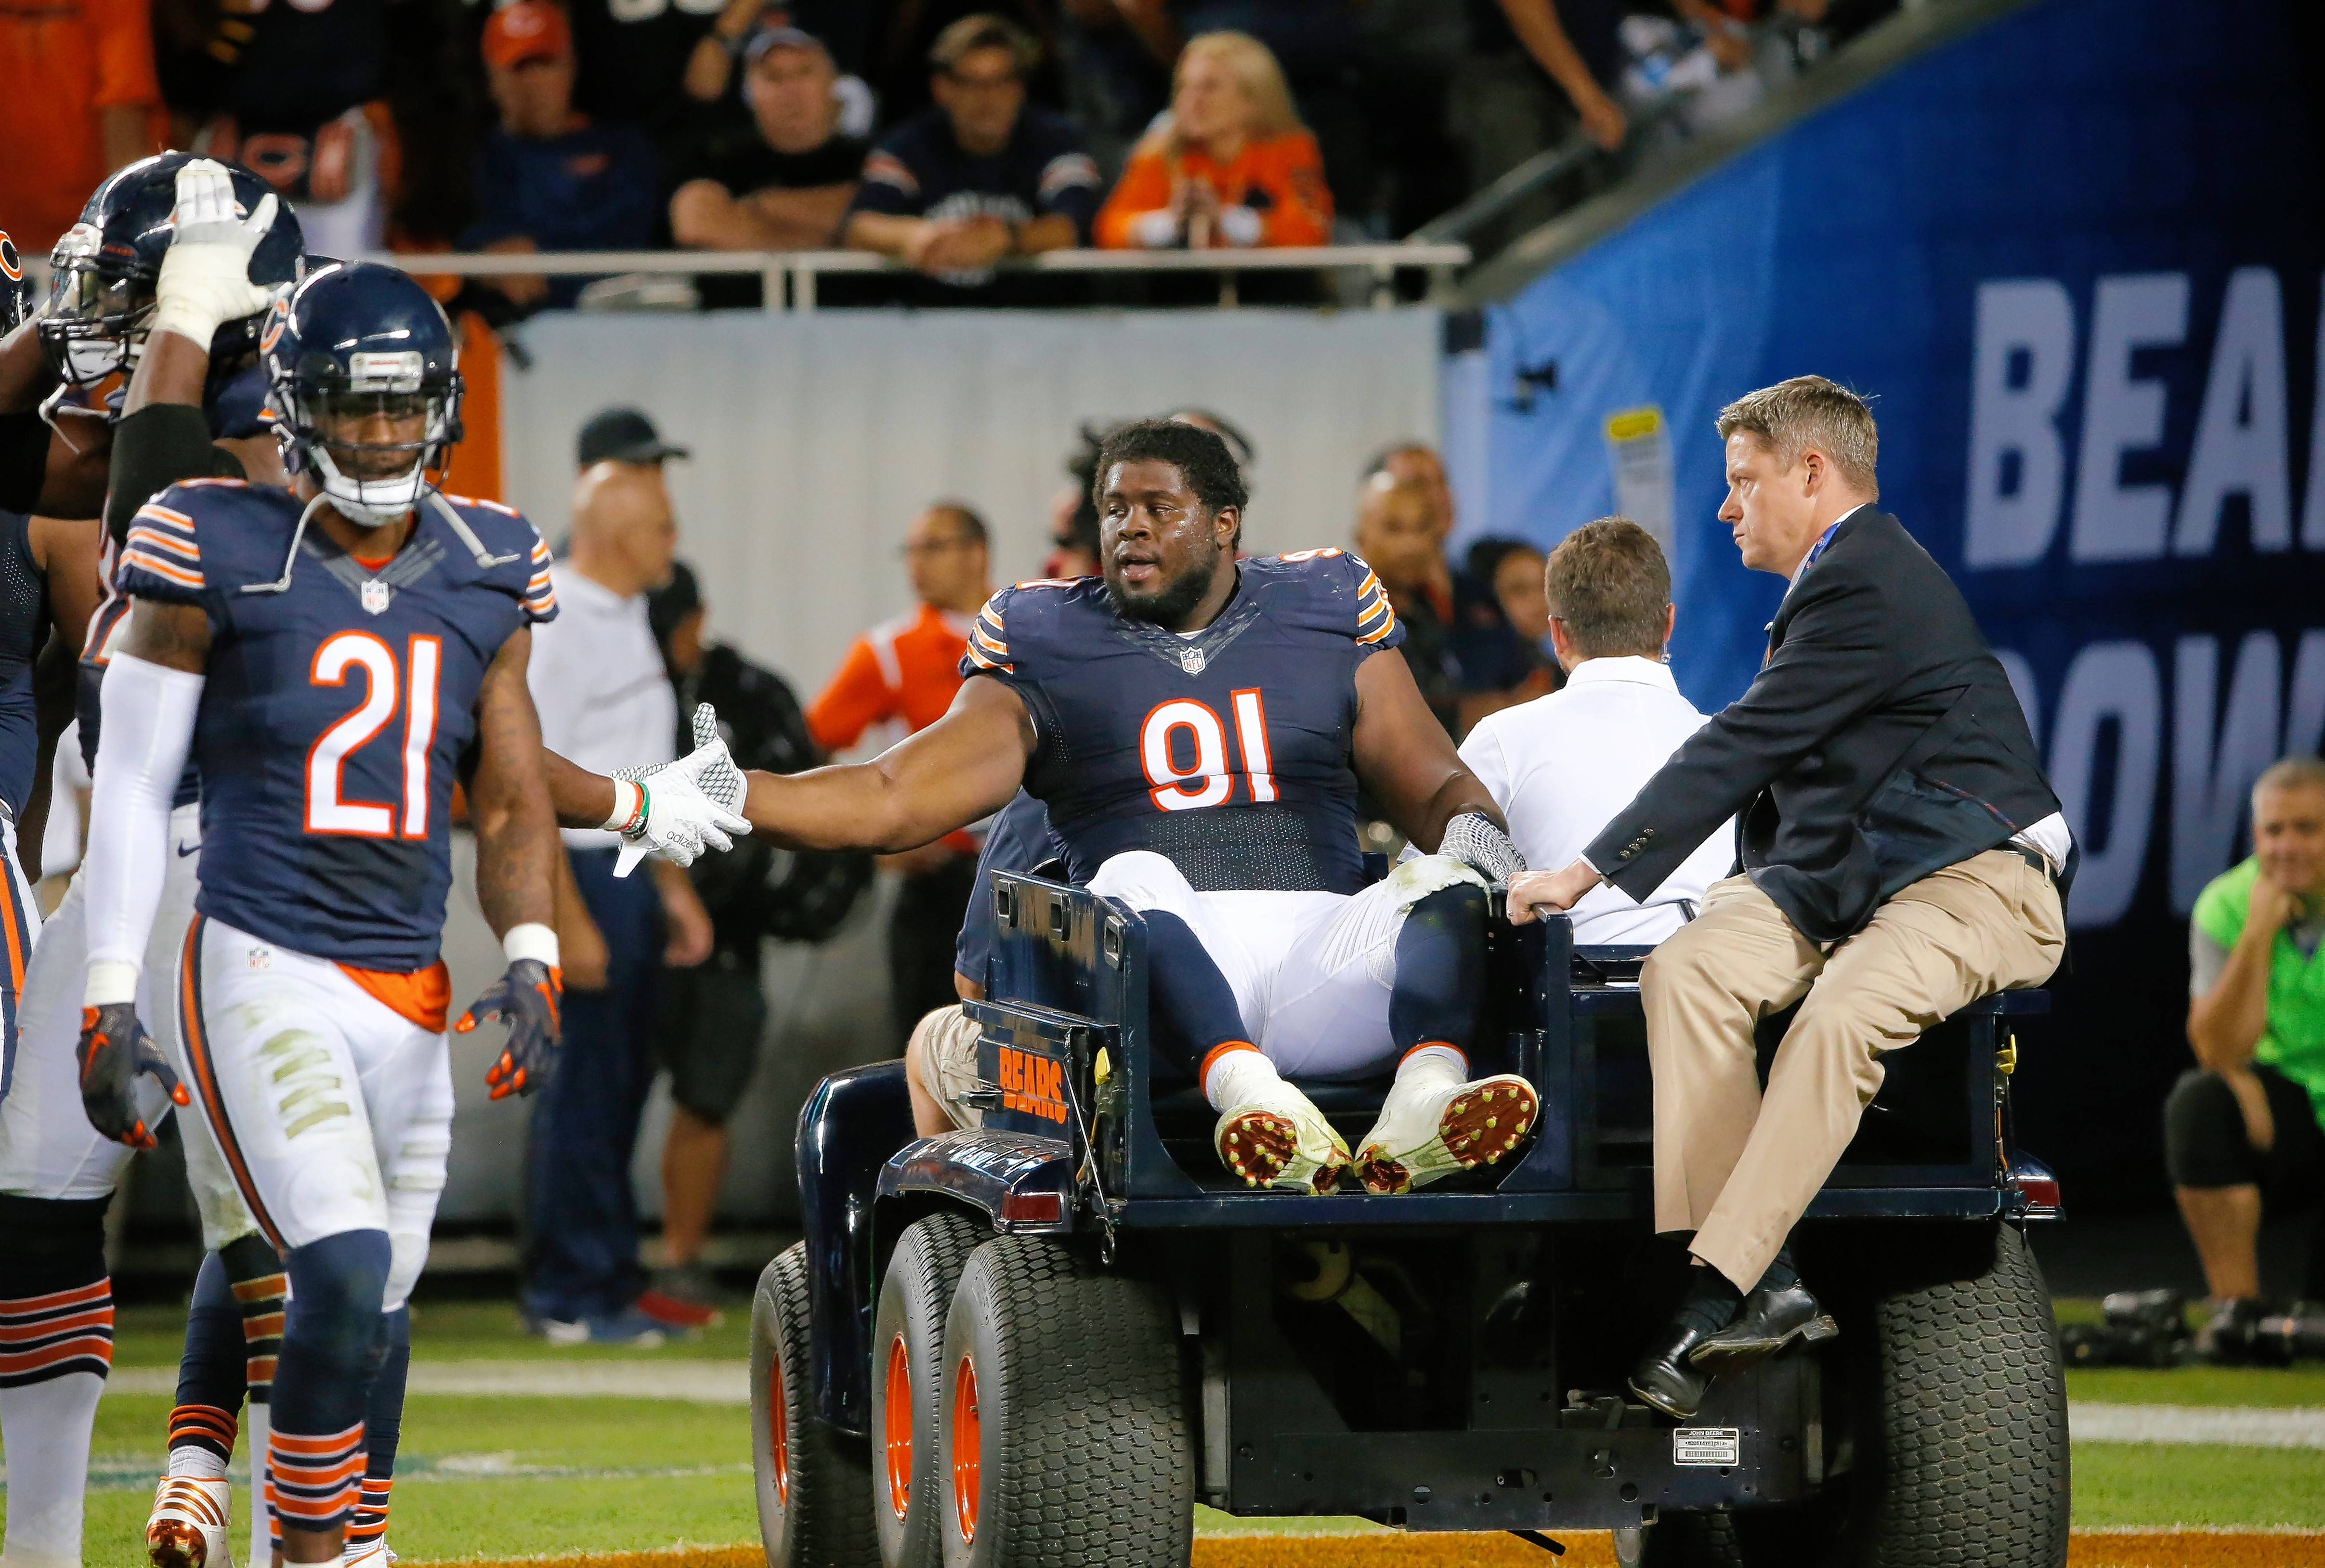 With injuries like that of nose tackle Eddie Goldman, the Bears defense is left shuffling around to try and fill voids.